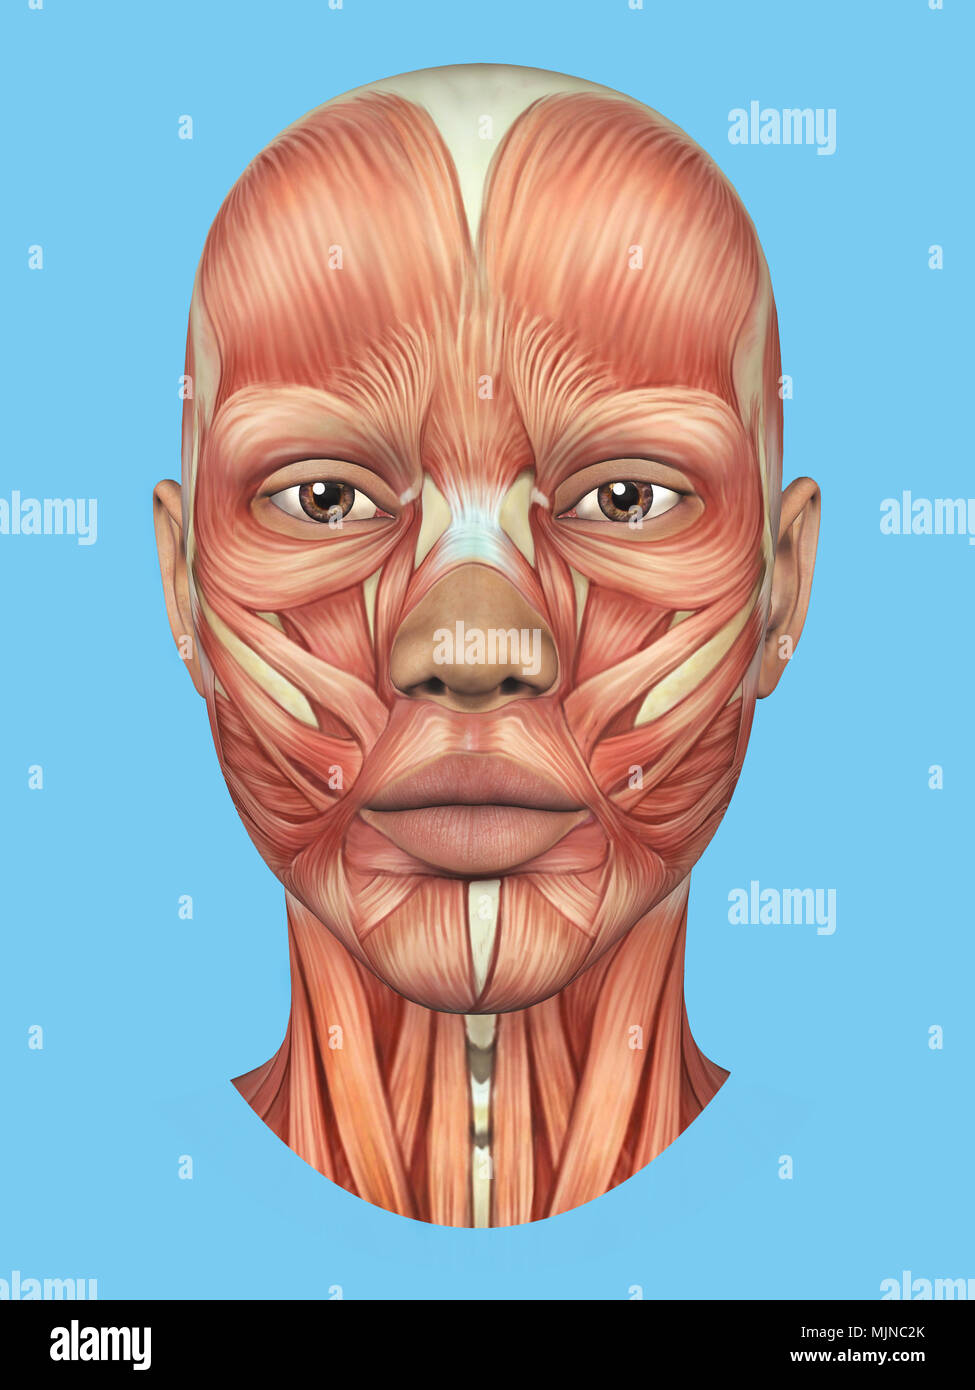 Anatomy Front View Of Major Face Muscles Of A Woman Stock Photo